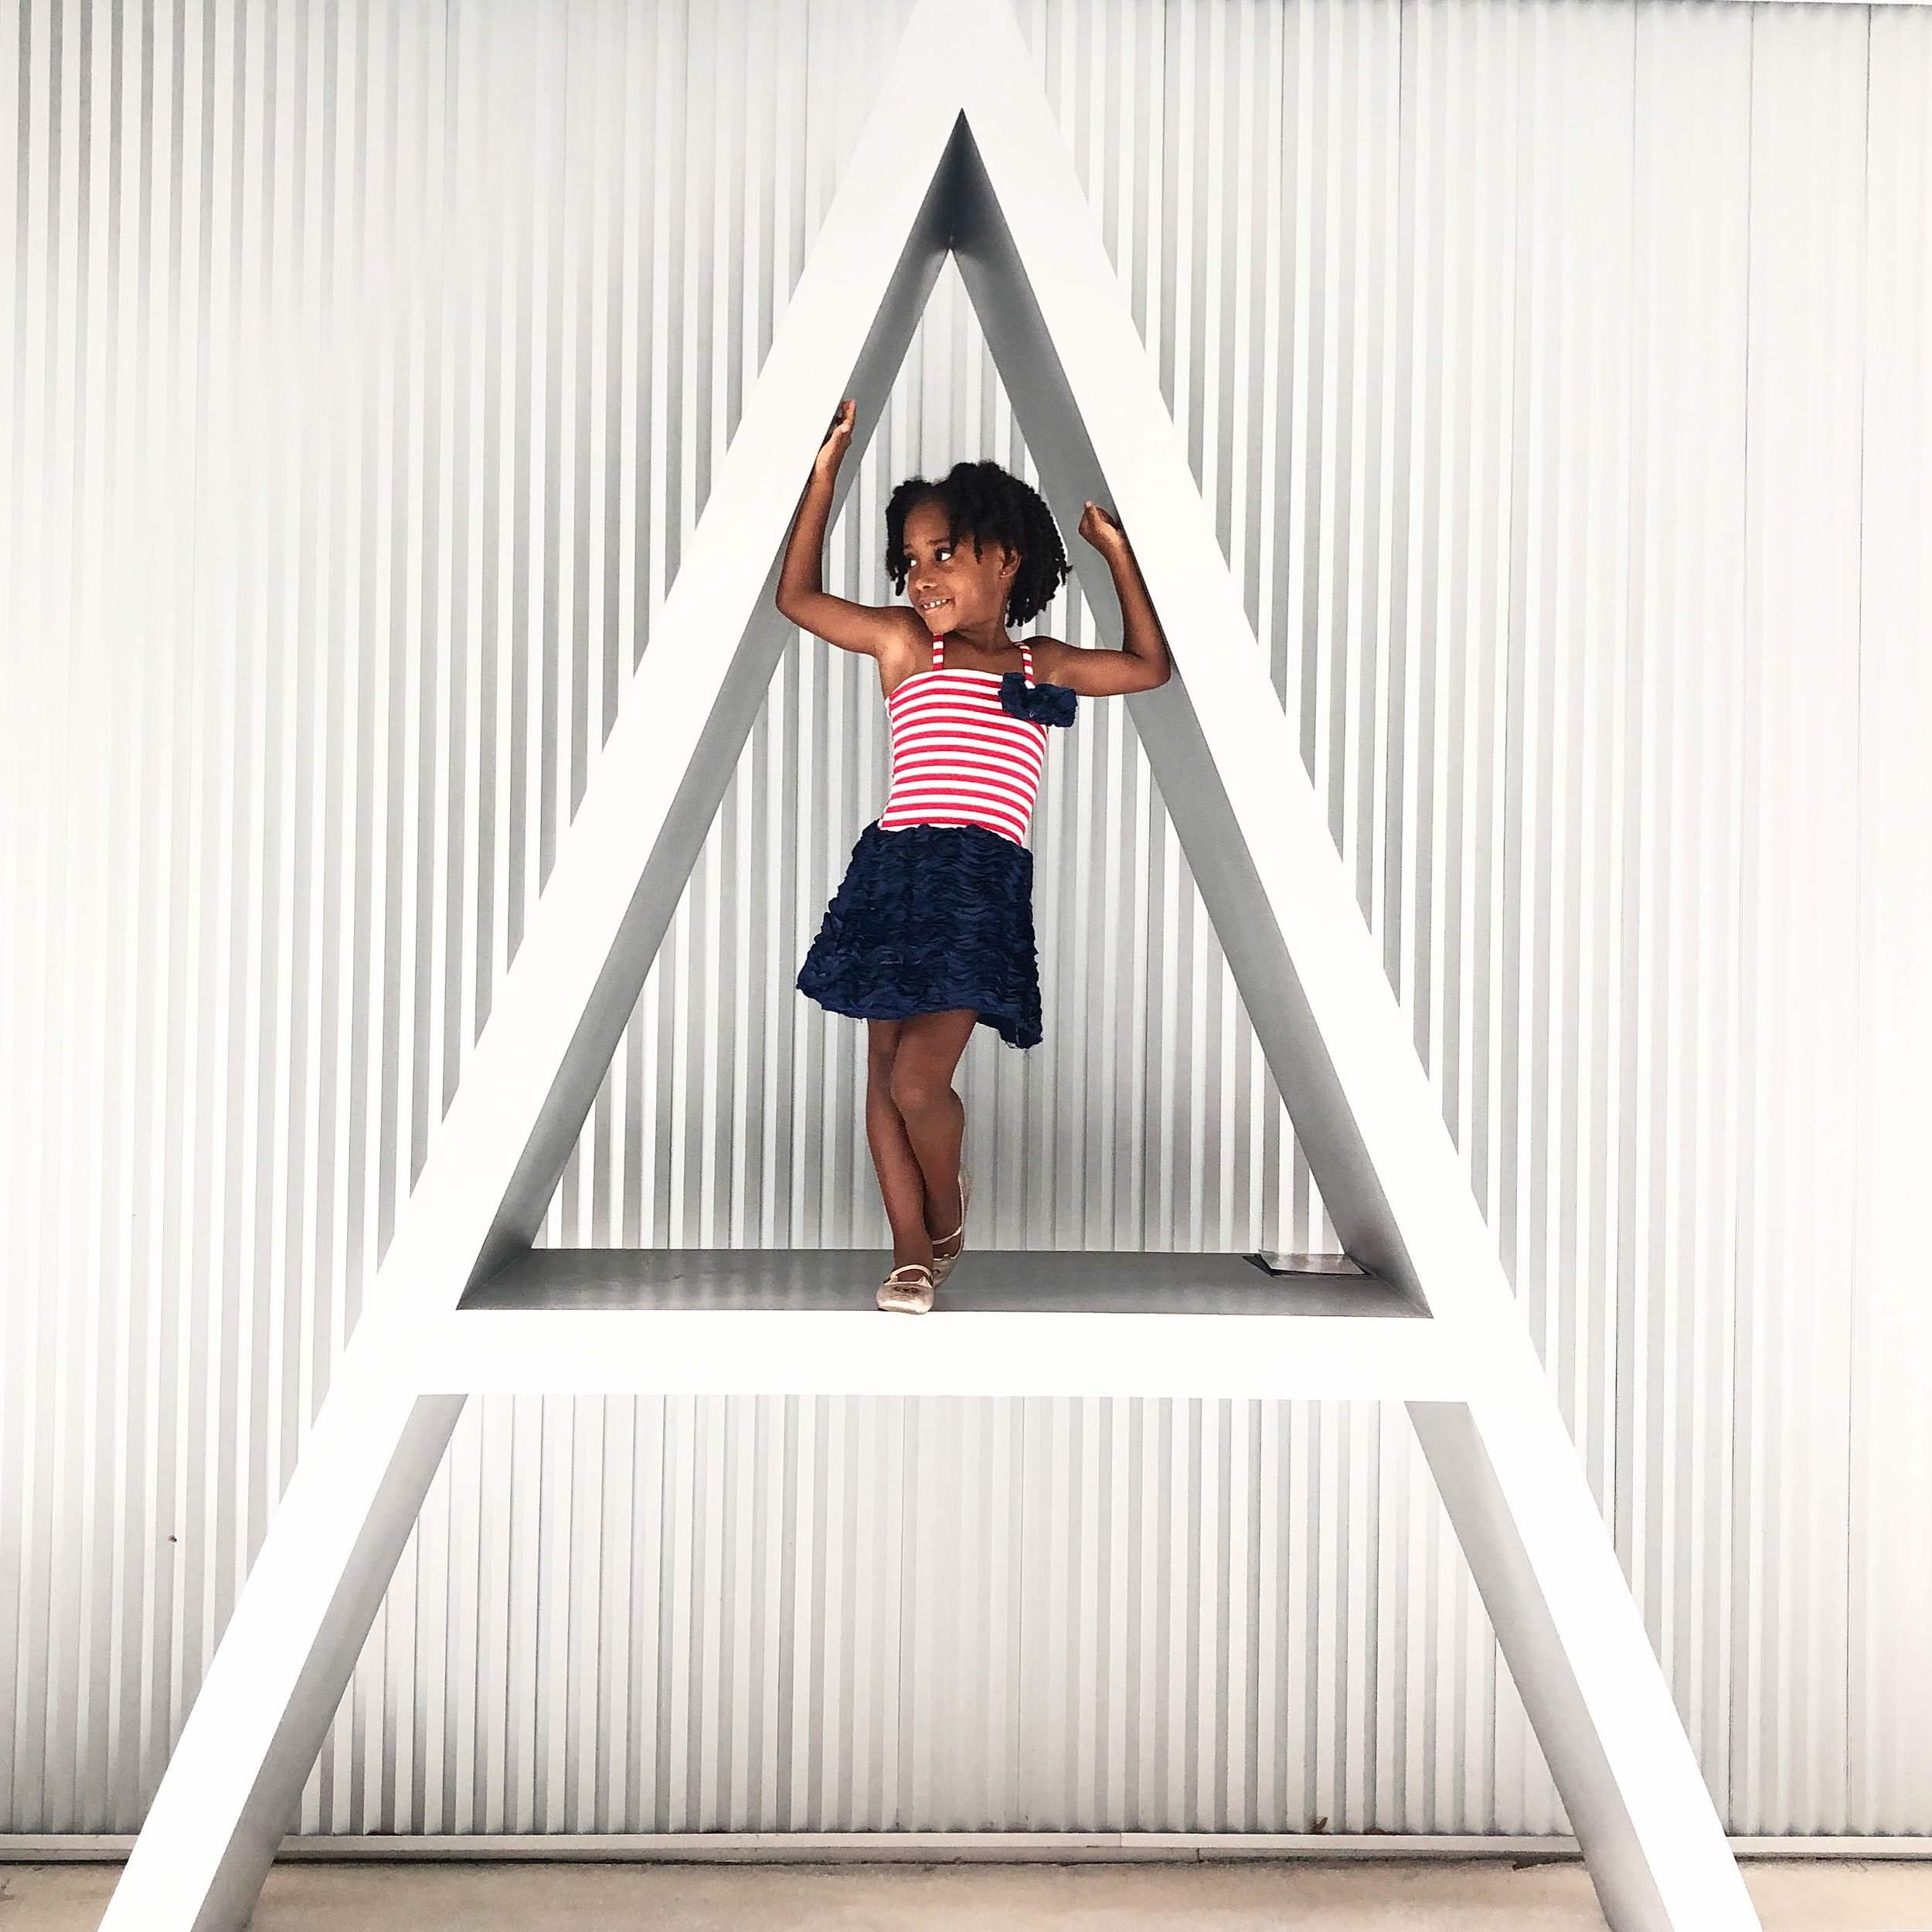 Walking around Miami's Design District, we found fun art pieces for our mini photo shoot.   Institute of Contemporary Art